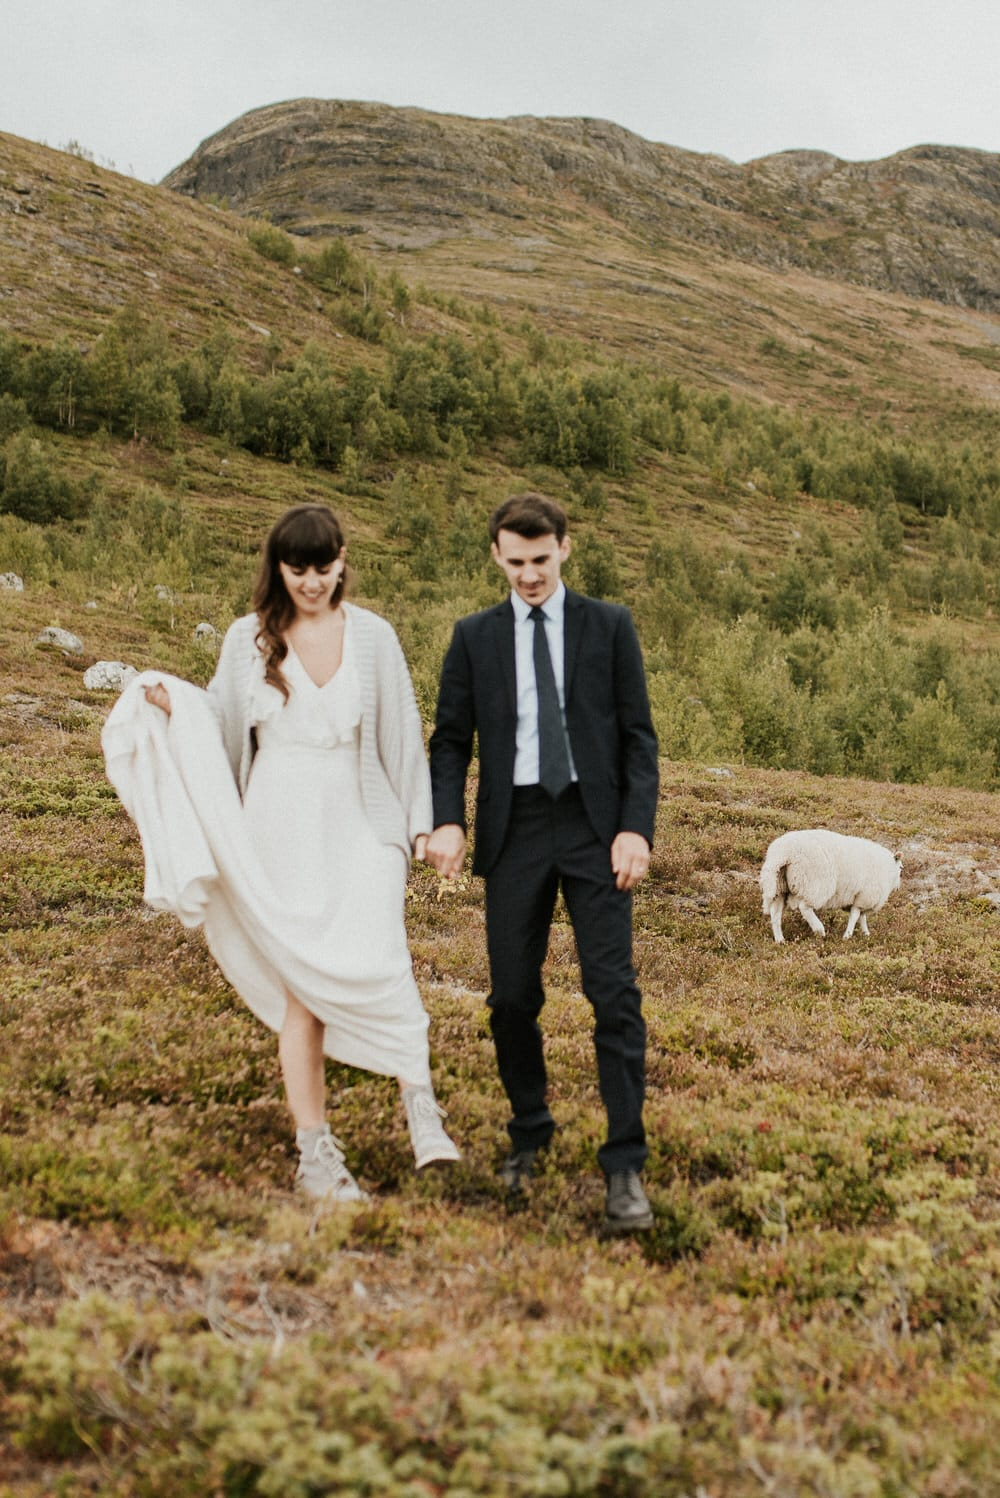 A bride and groom hiking with sheep at outdoor wedding